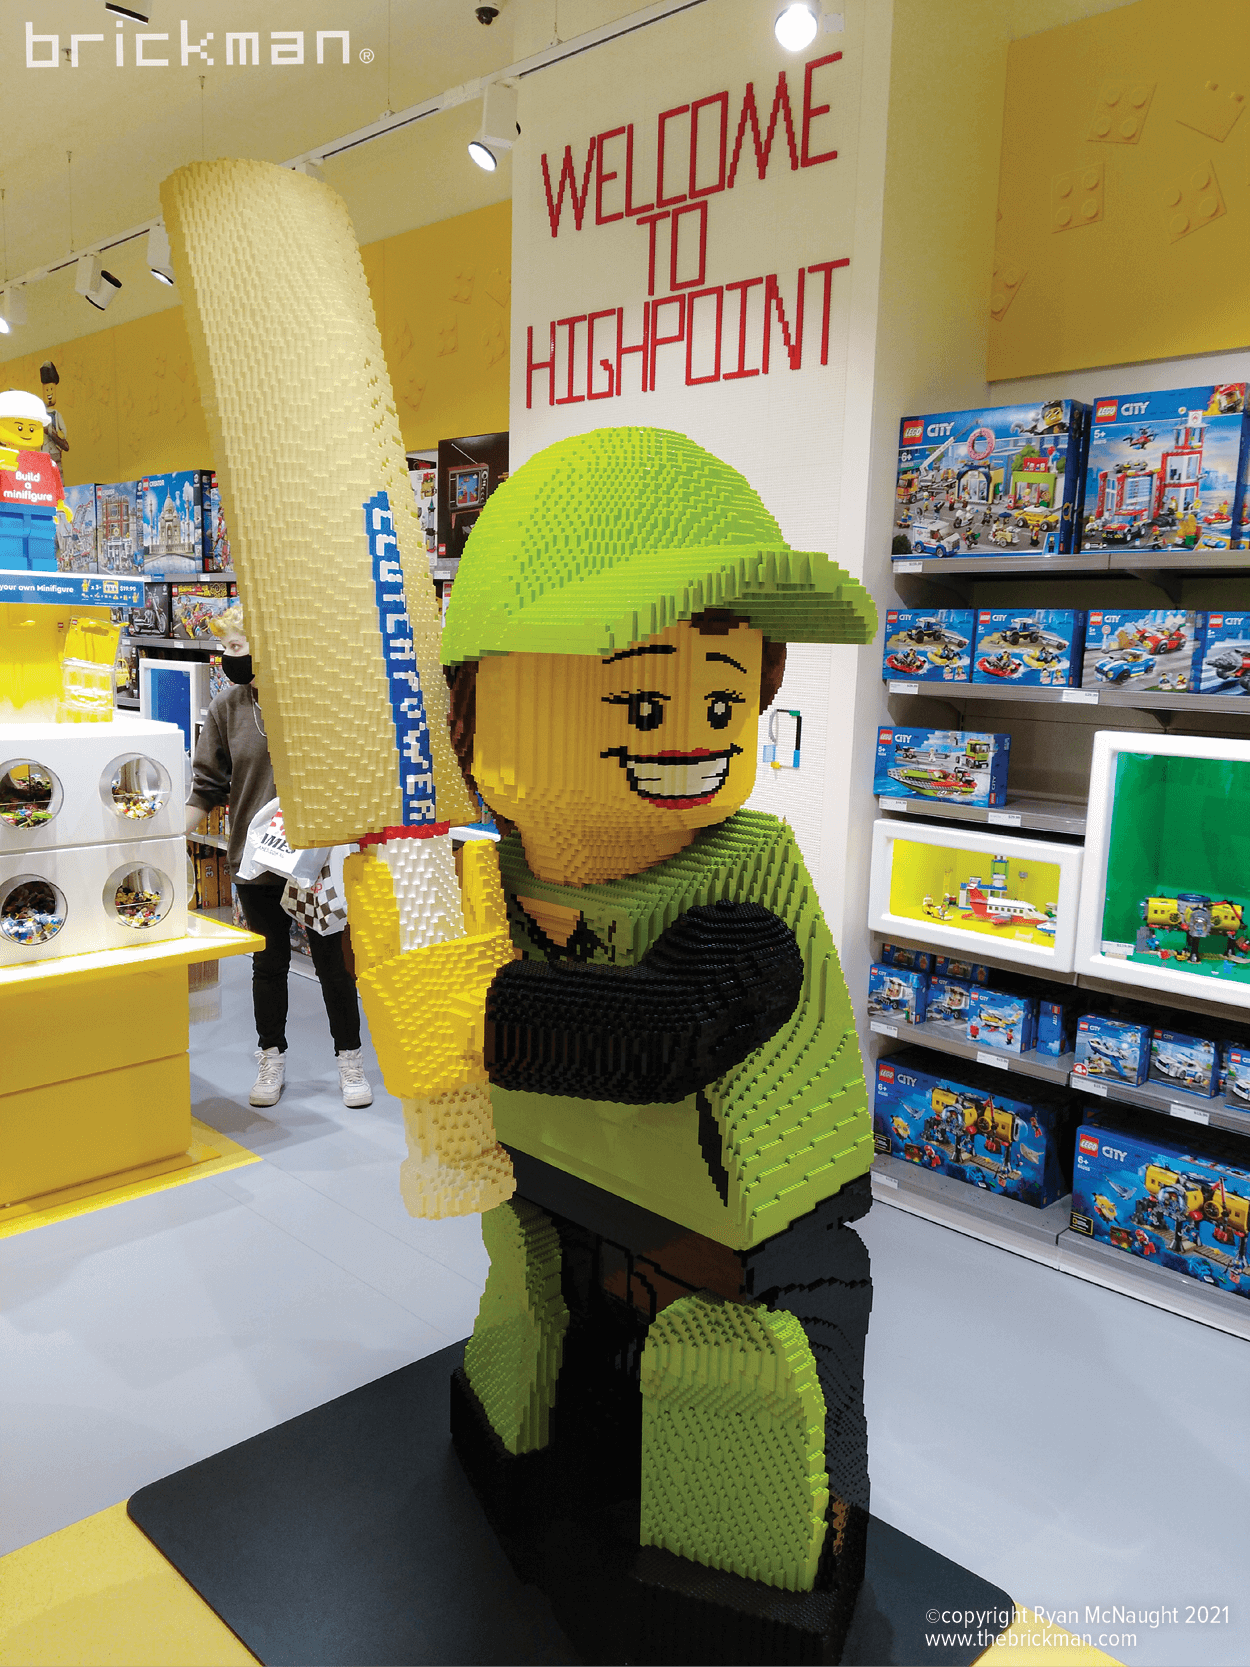 Highpoint Cricket LEGO minifig instore01